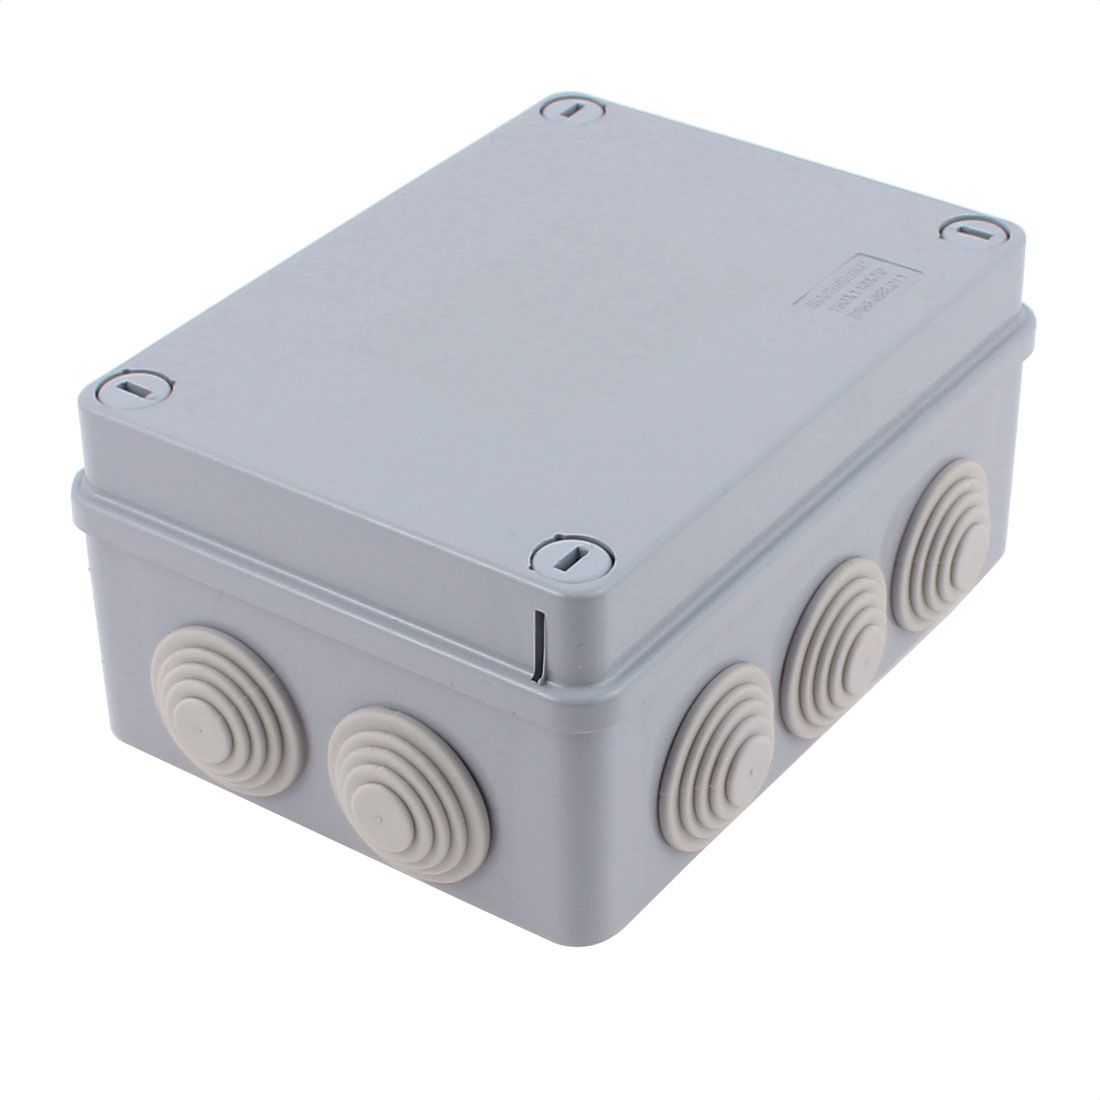 150 x 110 x 70mm Dustproof IP65 Junction Box Sealed Terminal Connecting Box